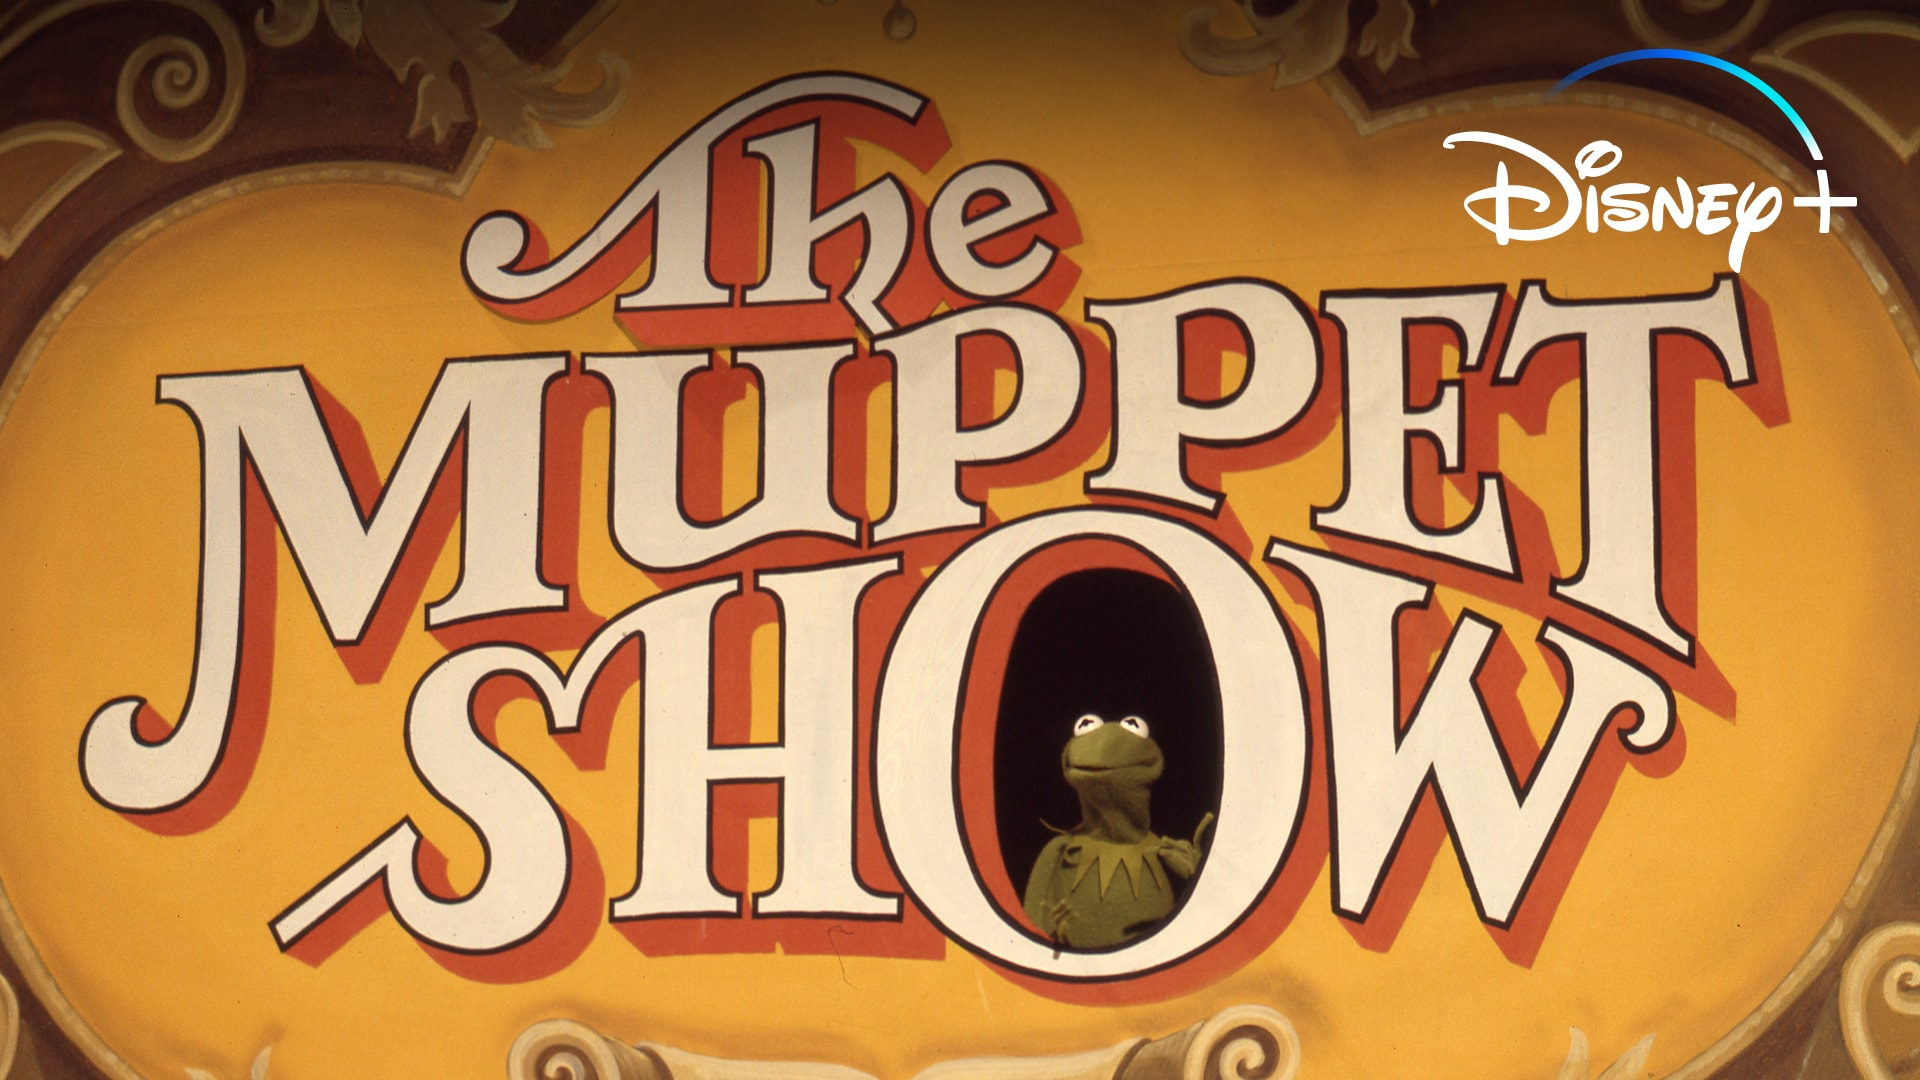 Original Theme Song | The Muppet Show | Disney+